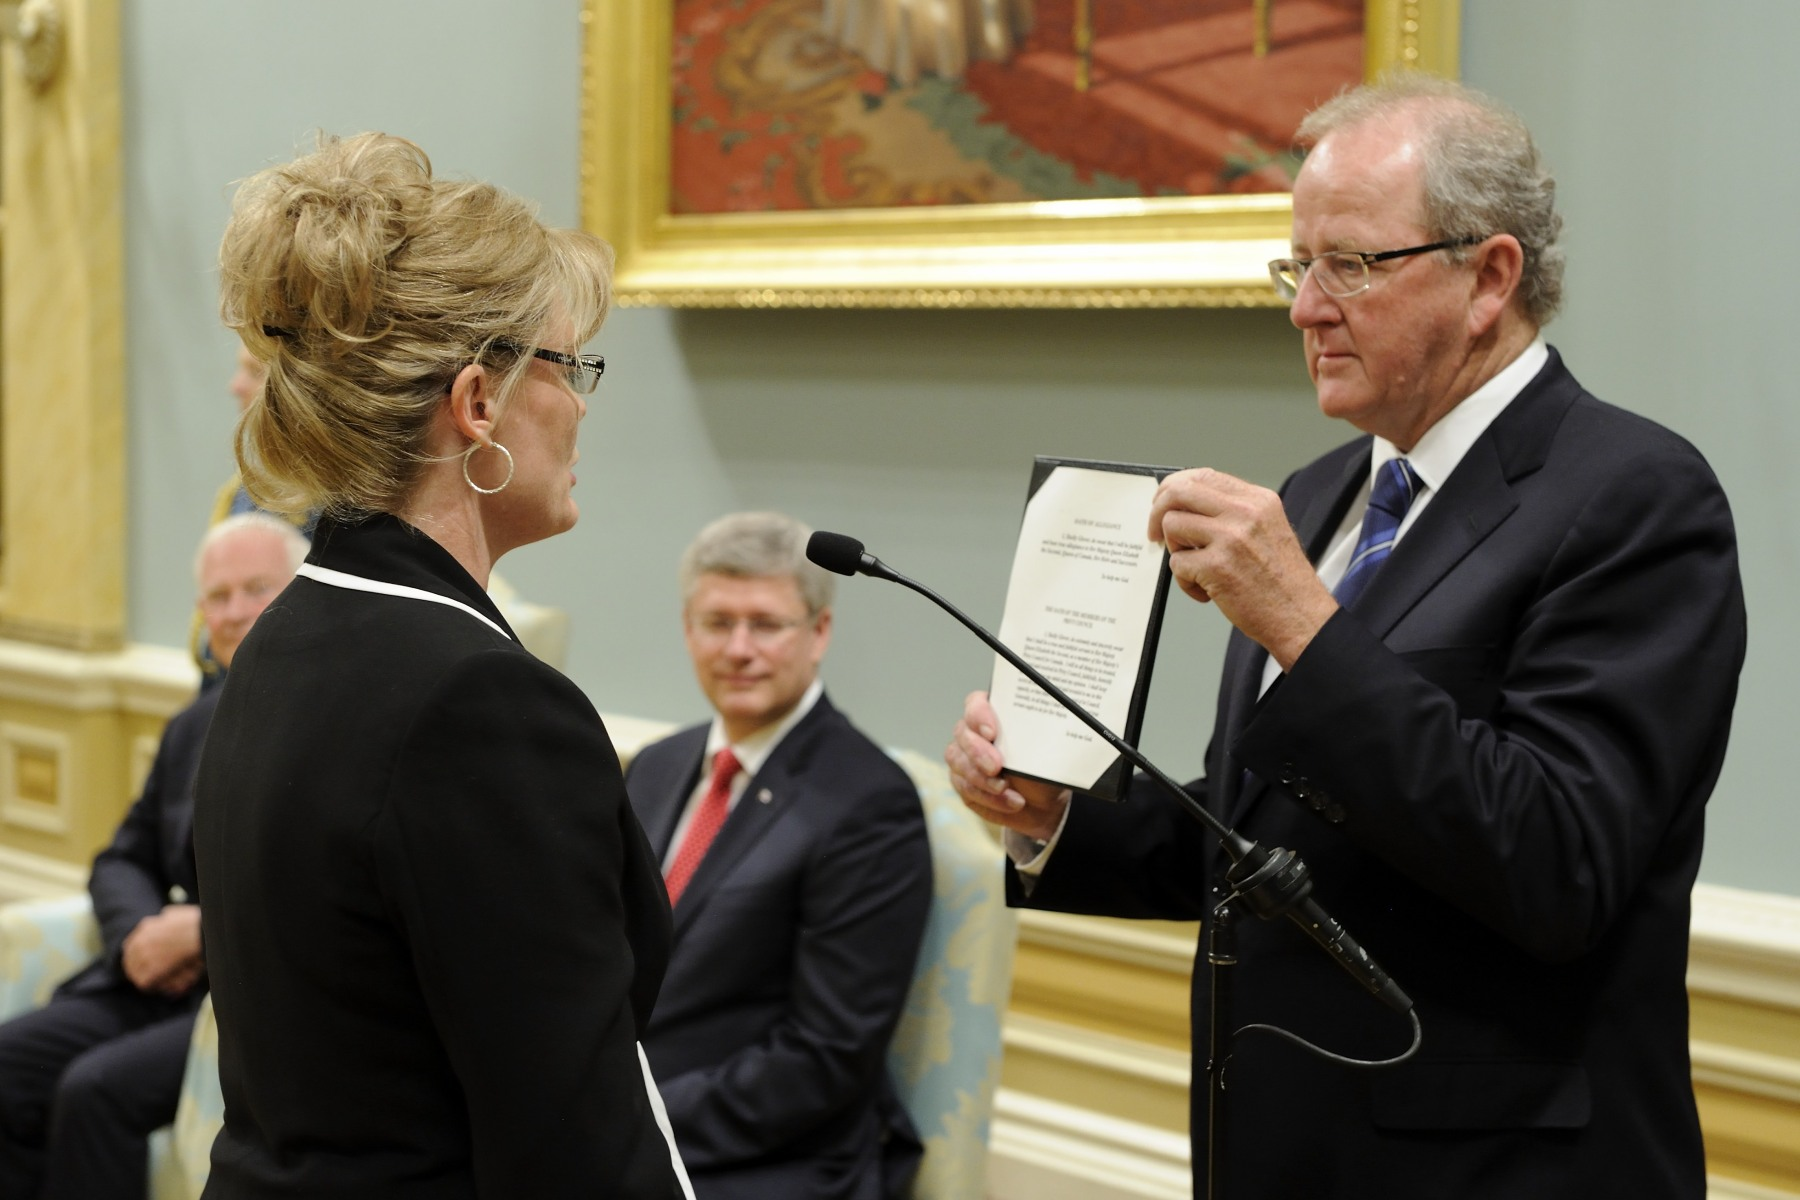 During a swearing-in ceremony at Rideau Hall on July 15, 2013, members of the 28th federal Ministry were presented. Each candidate approached Mr. Wayne Wouters, Clerk of the Privy Council and Secretary to the Cabinet, and took their oath.